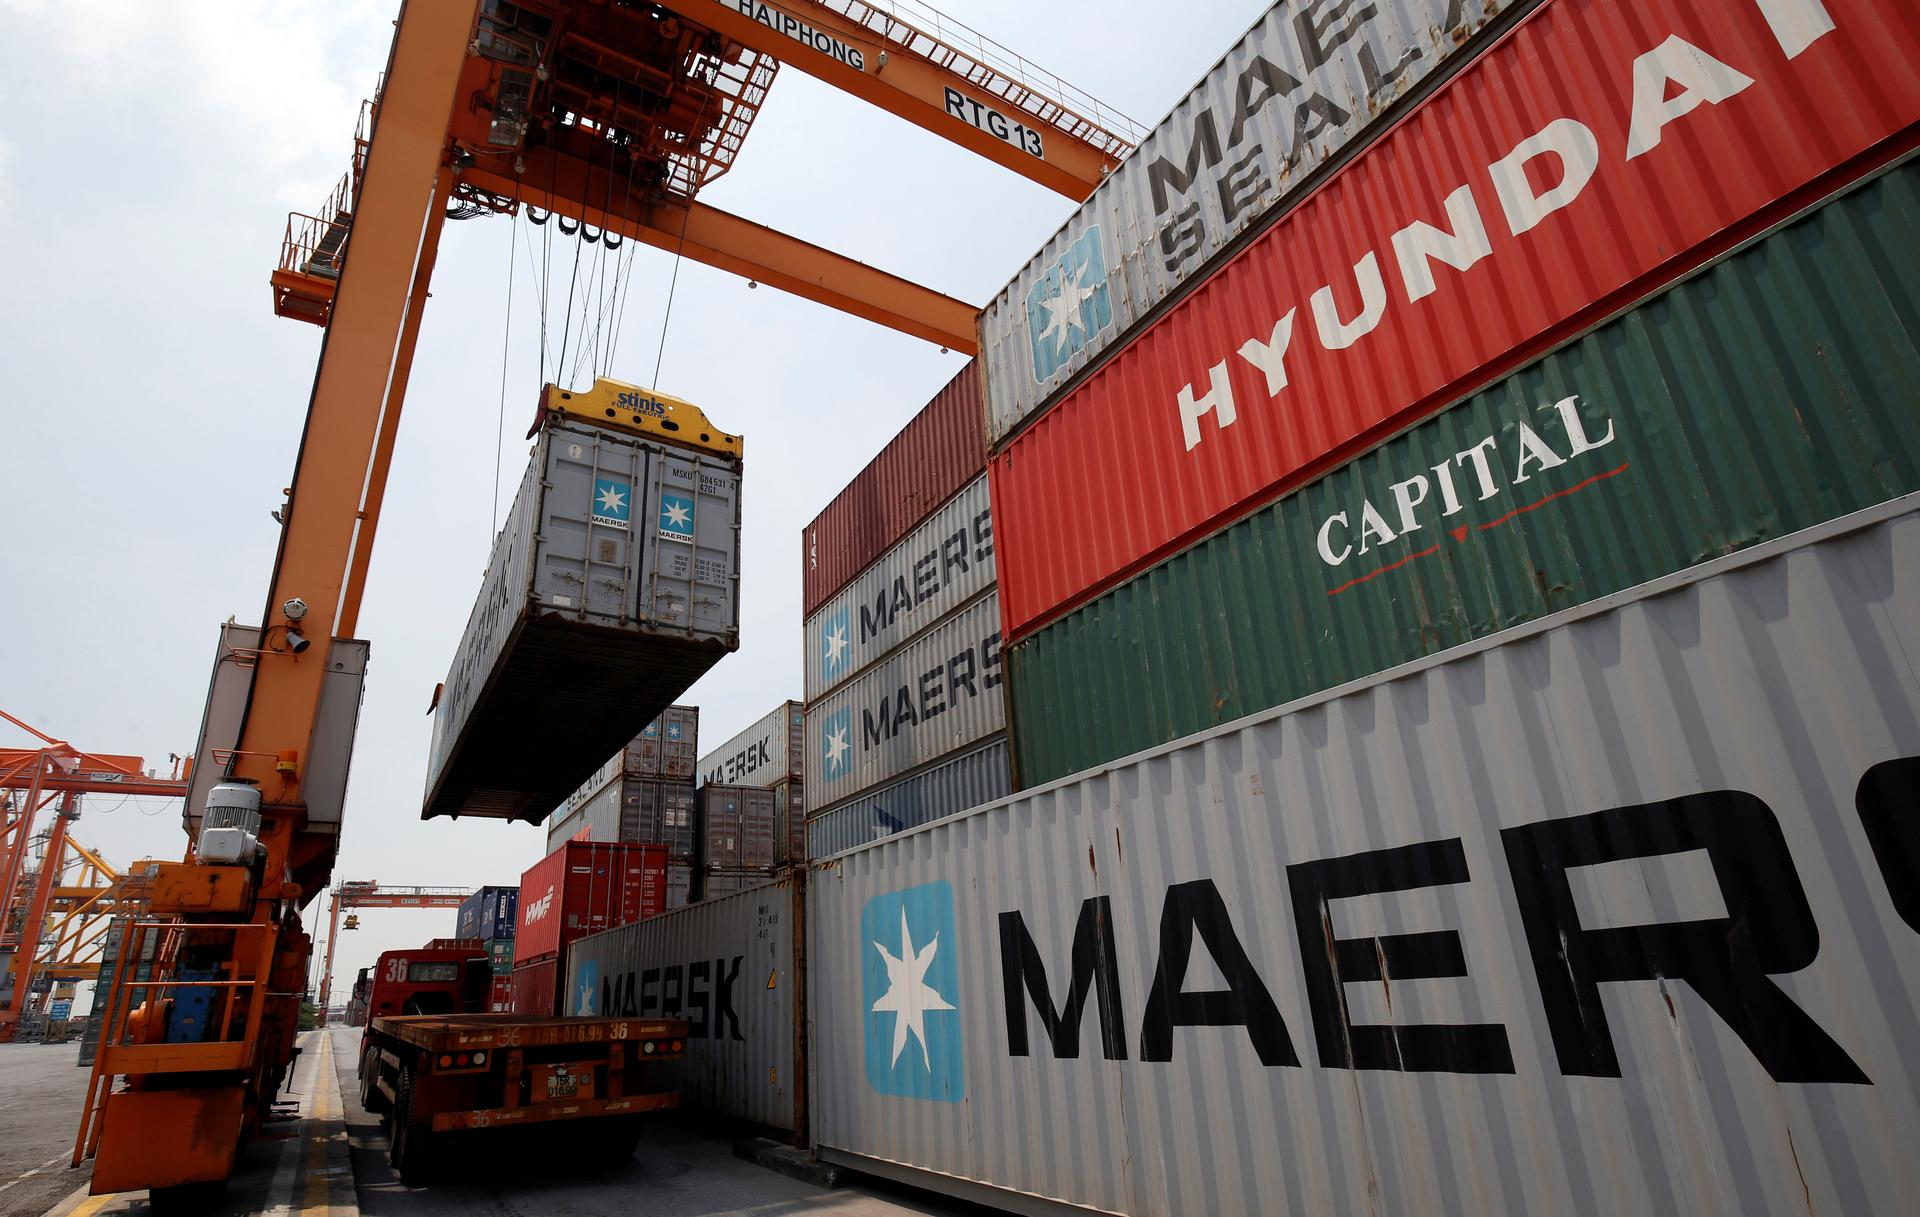 Vietnam H1 trade surplus $5.46 bln vs $1.72 bln surplus in H1 2019: customs